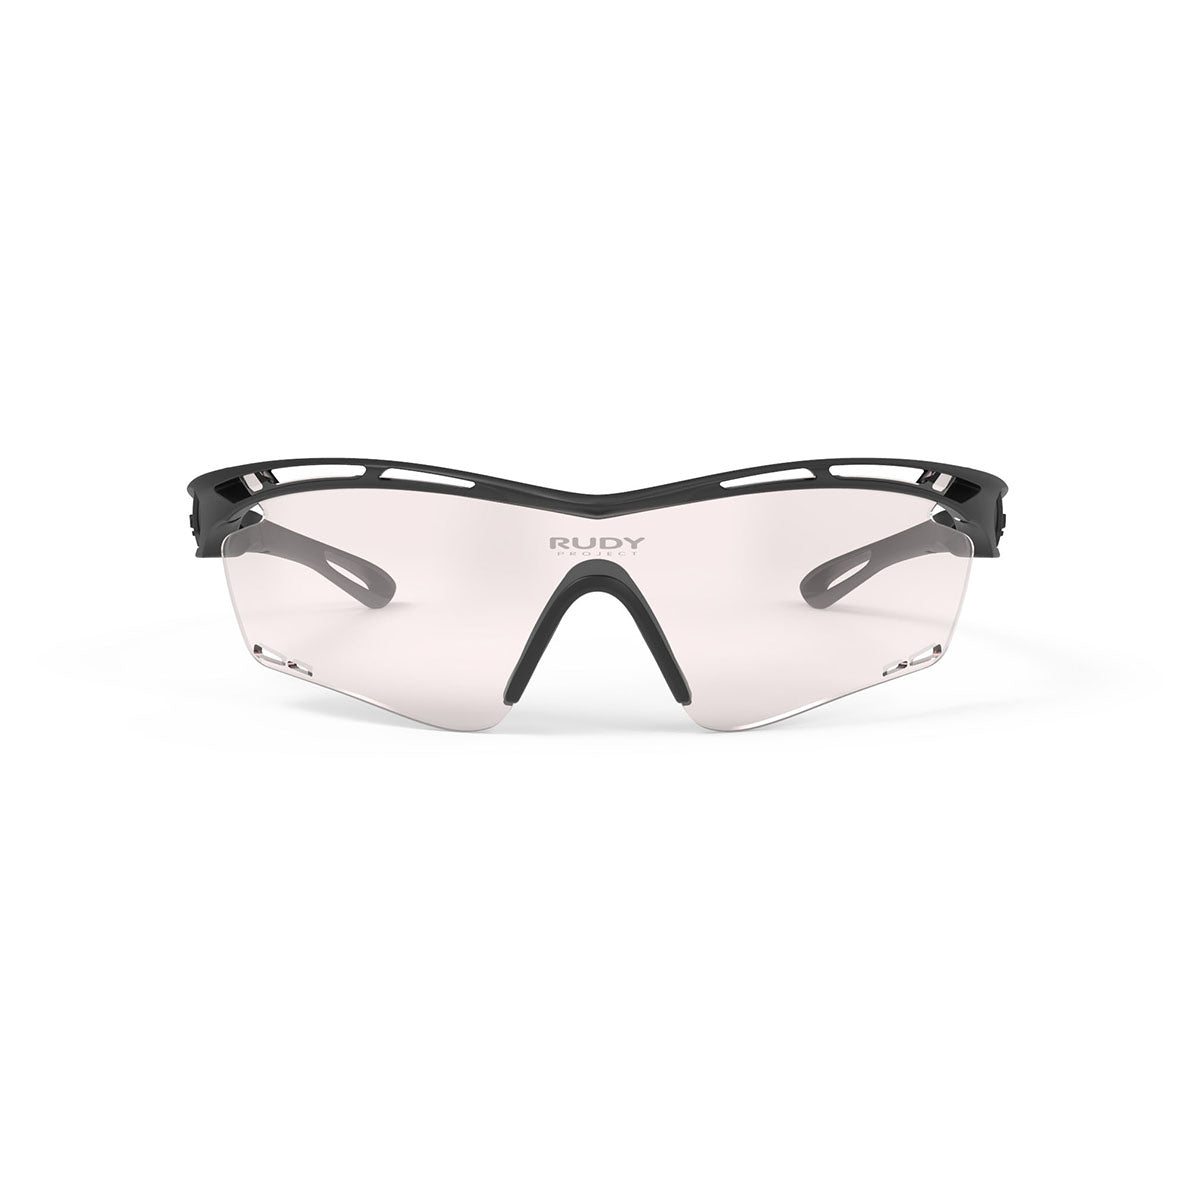 Rudy Project - Tralyx - frame color: Matte Black - lens color: ImpactX-2 Photochromic Clear to Laser Red - photo angle: Front View Variant Hover Image